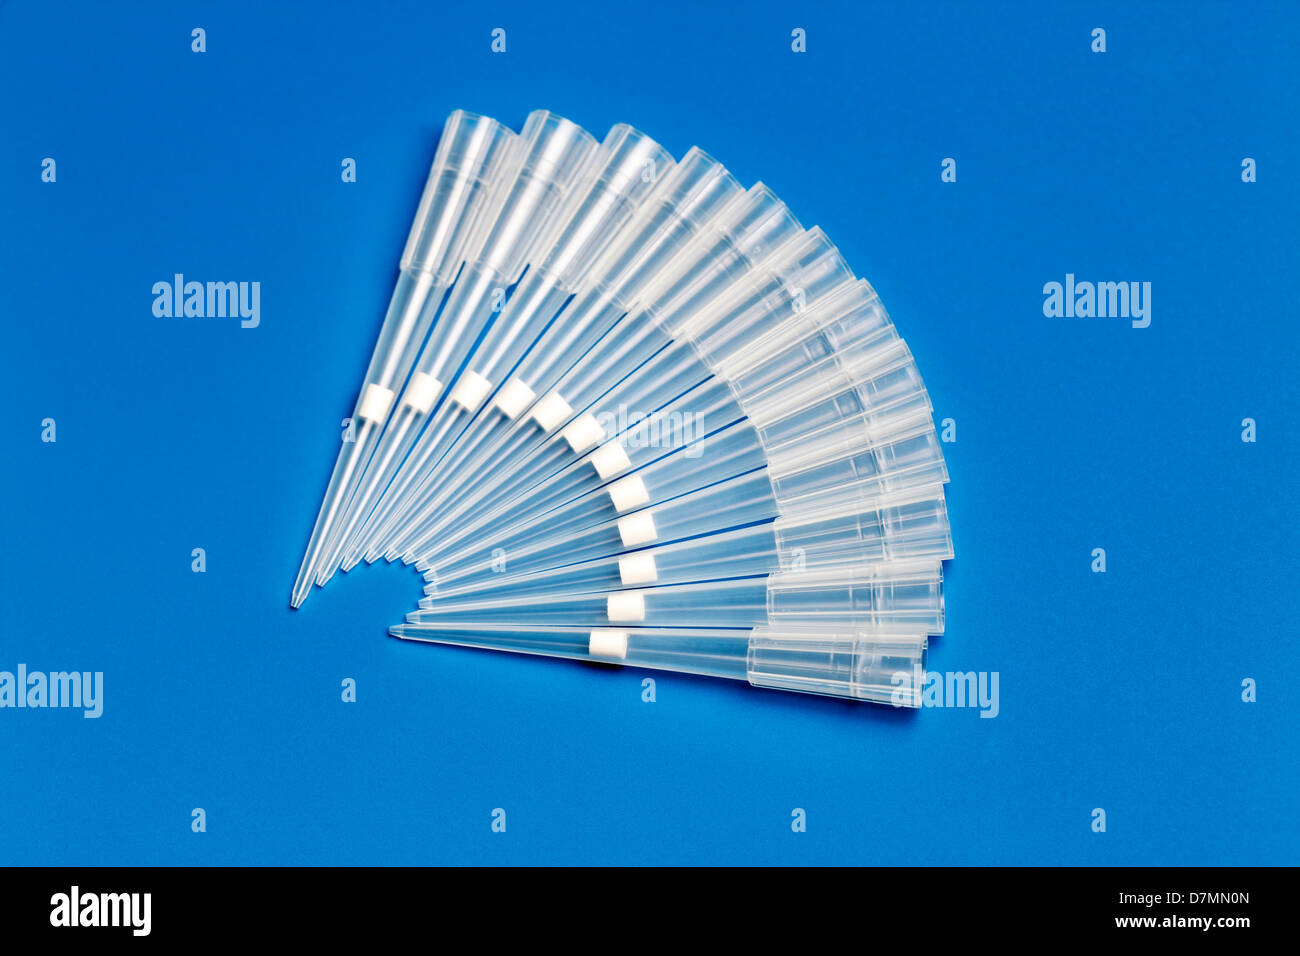 Pipette tips - Stock Image